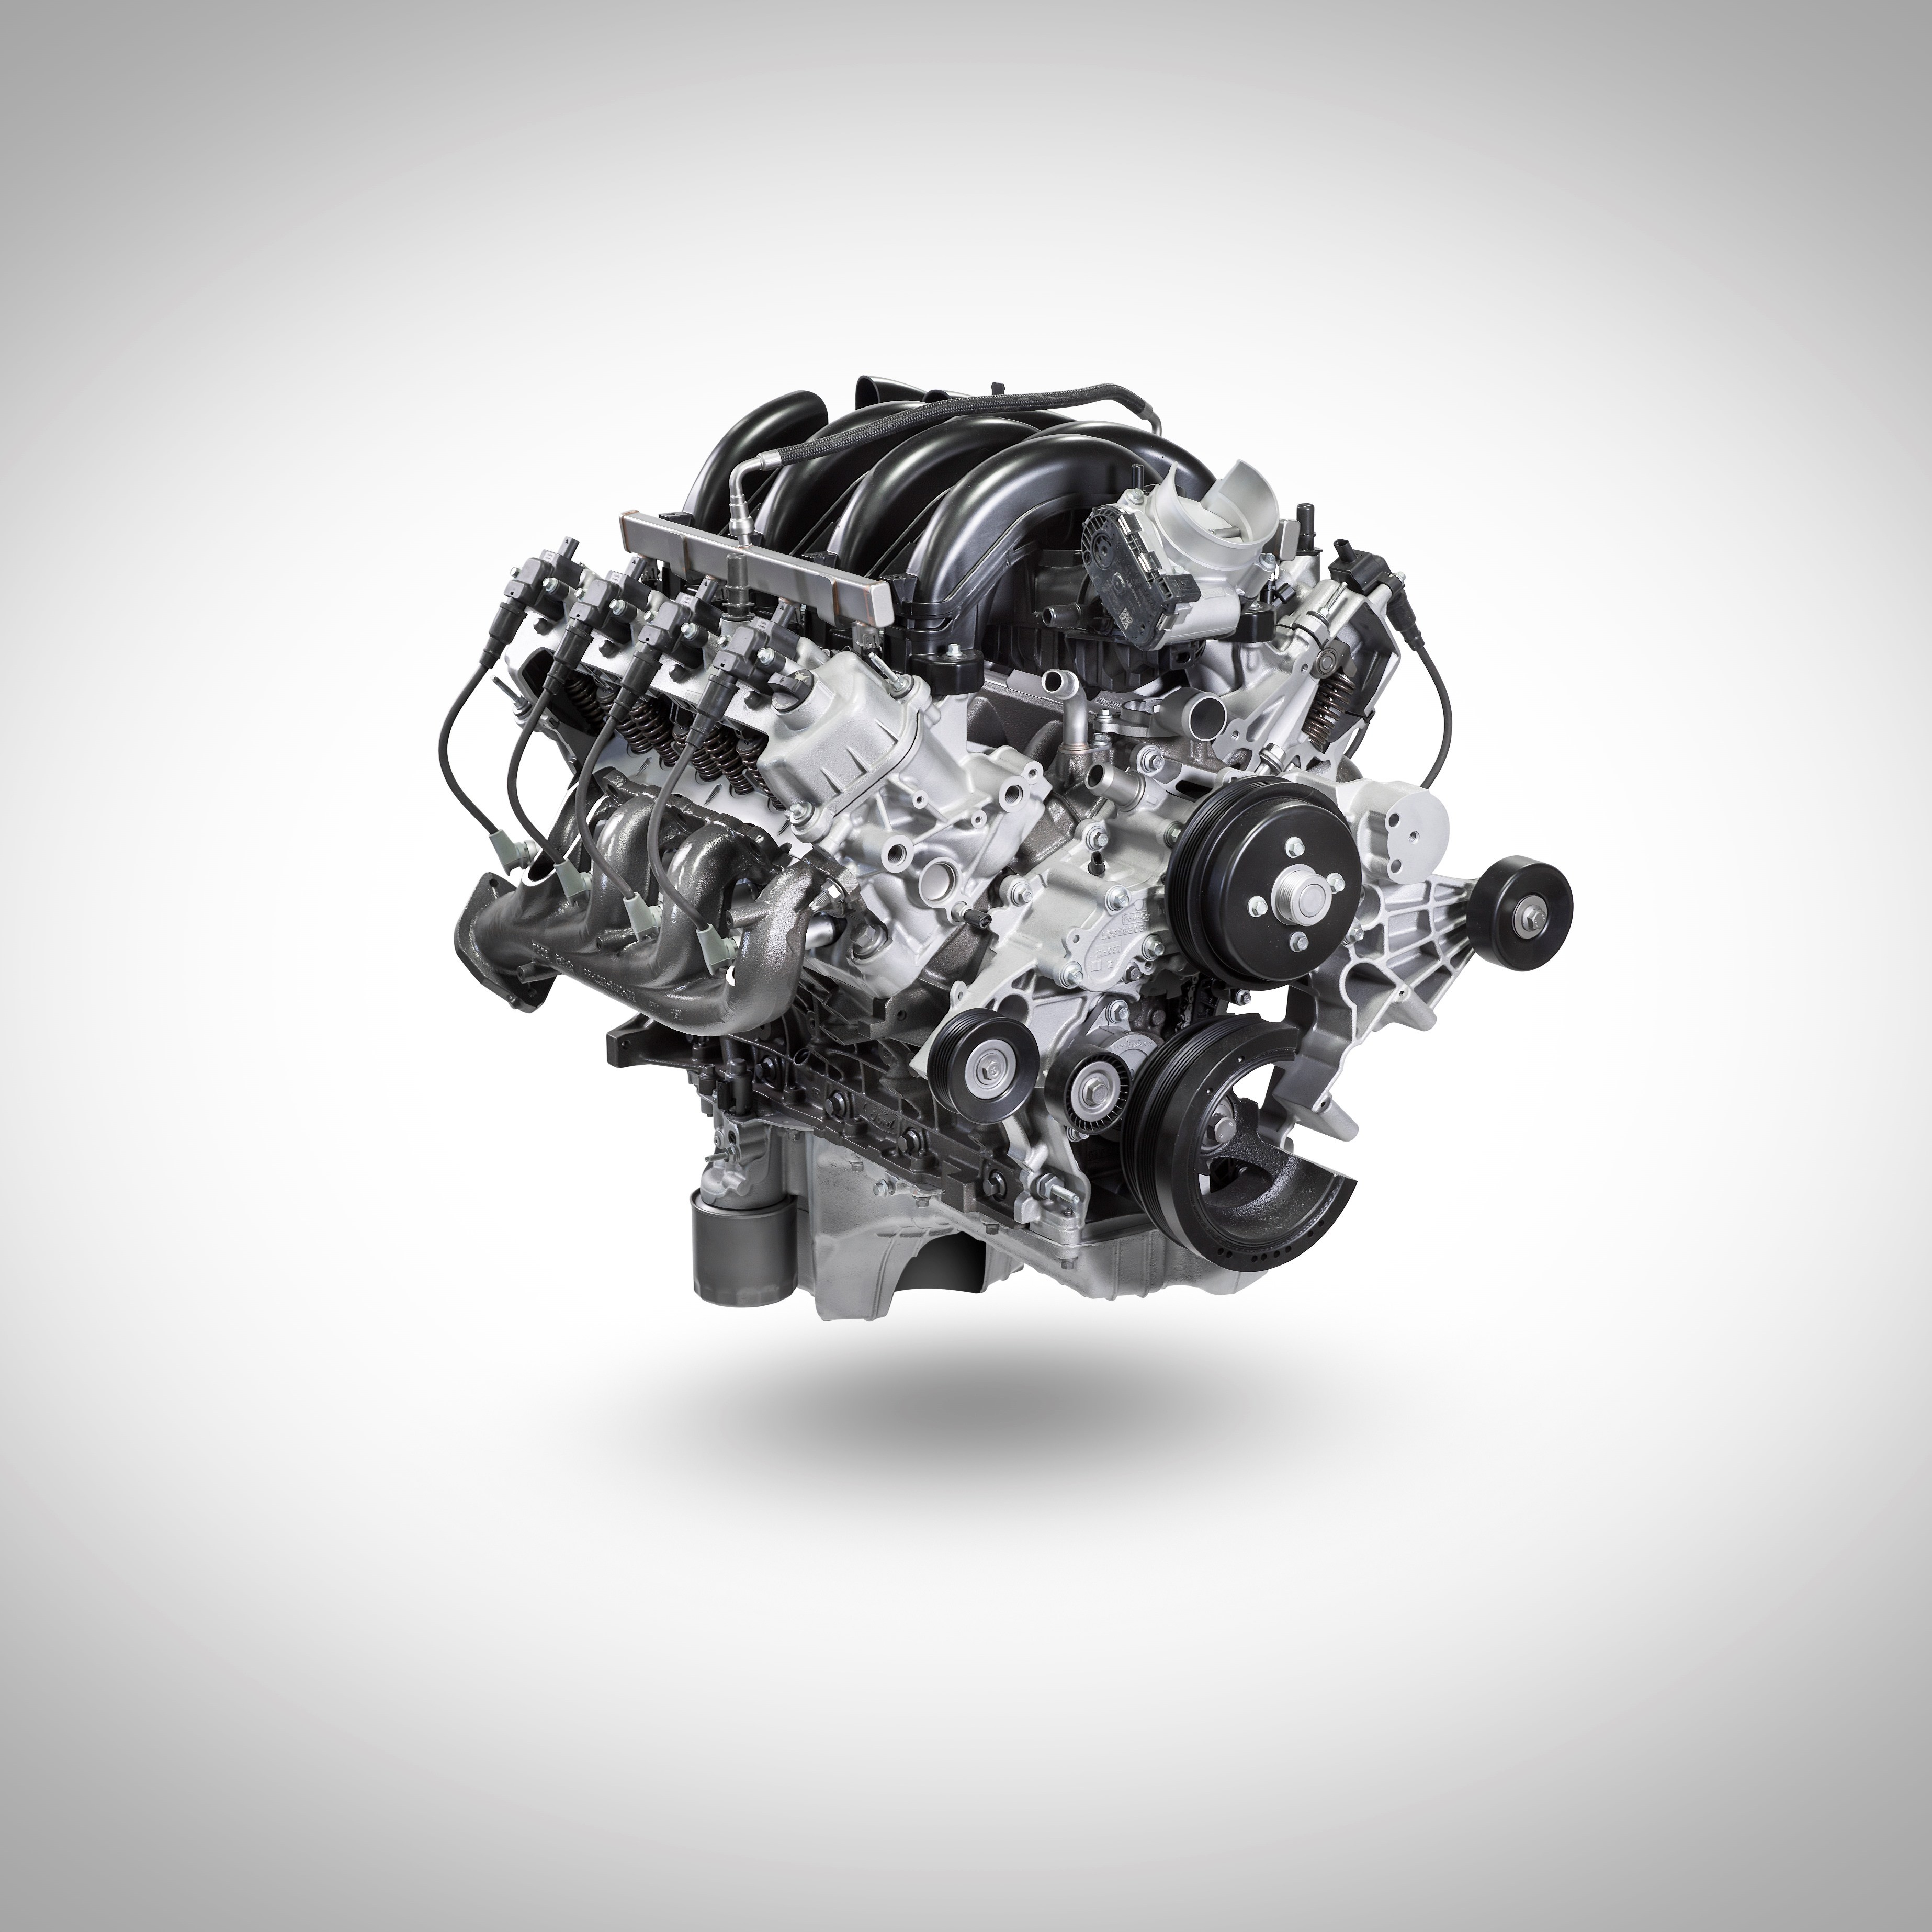 Ford Super Duty Truck Gets New Engine Option!